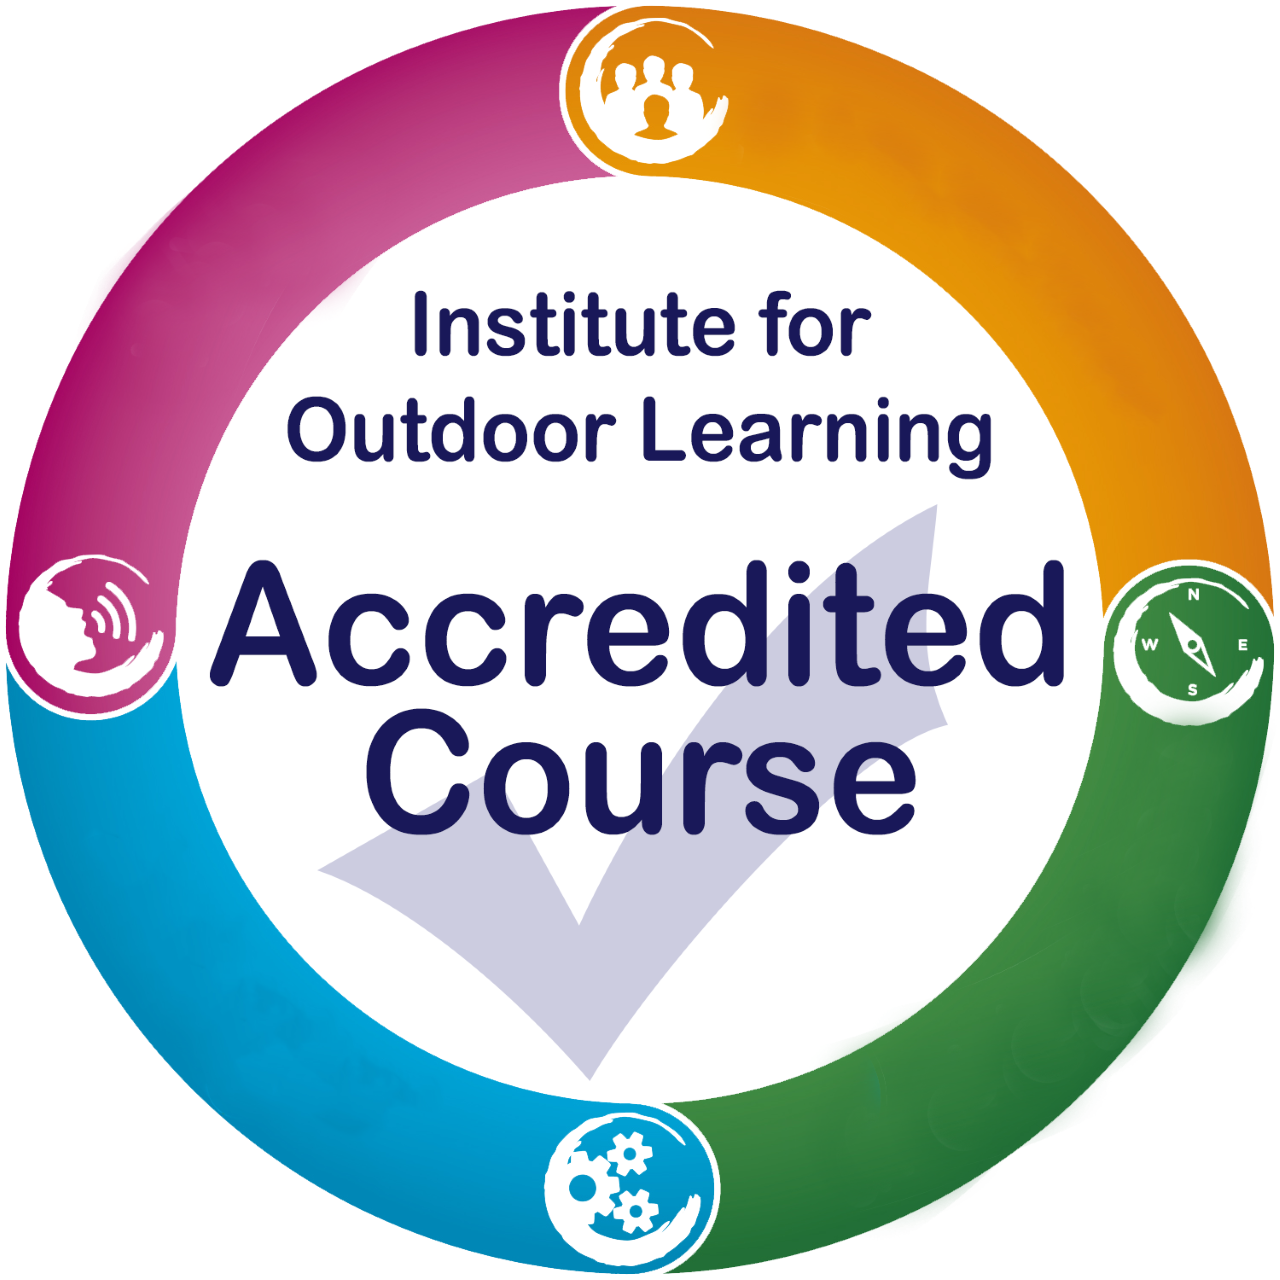 IOL Accredited Course Badge.png